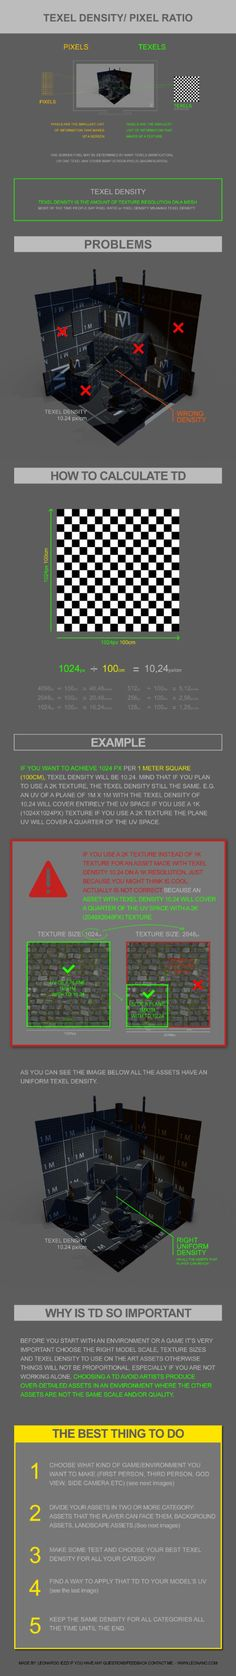 leonardo-iezzi-leonardo-iezzi-texeld-density-all-you-need-to-know-tutorial-01.jpg (JPEG Image, 500 × 3551 pixels)